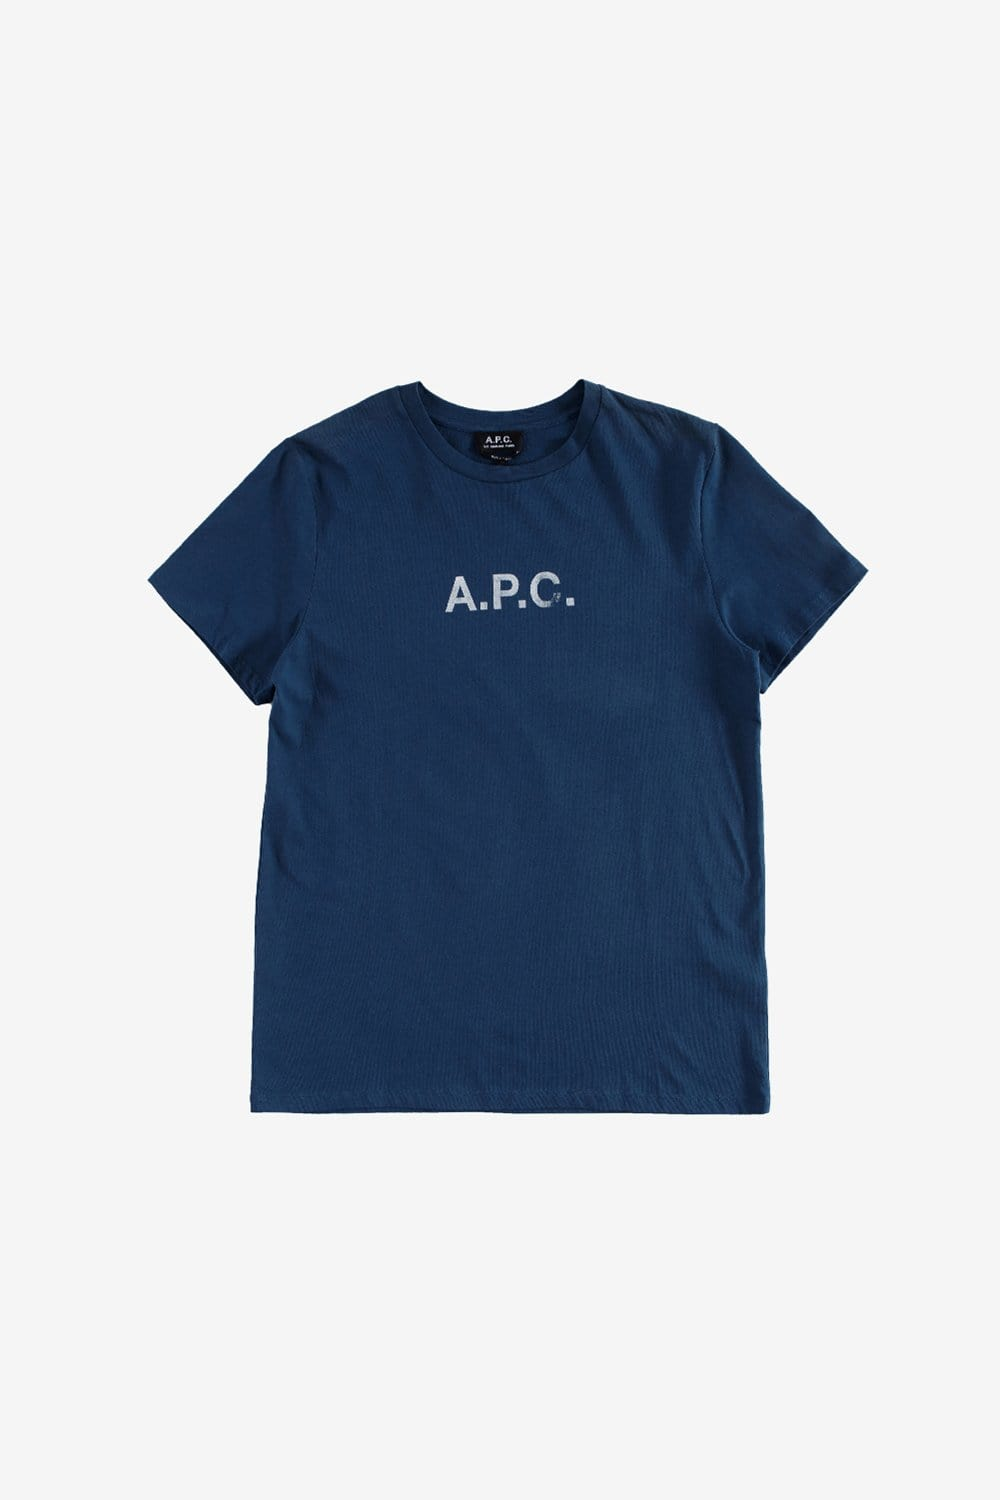 A.P.C. Apparel Stamp T-Shirt